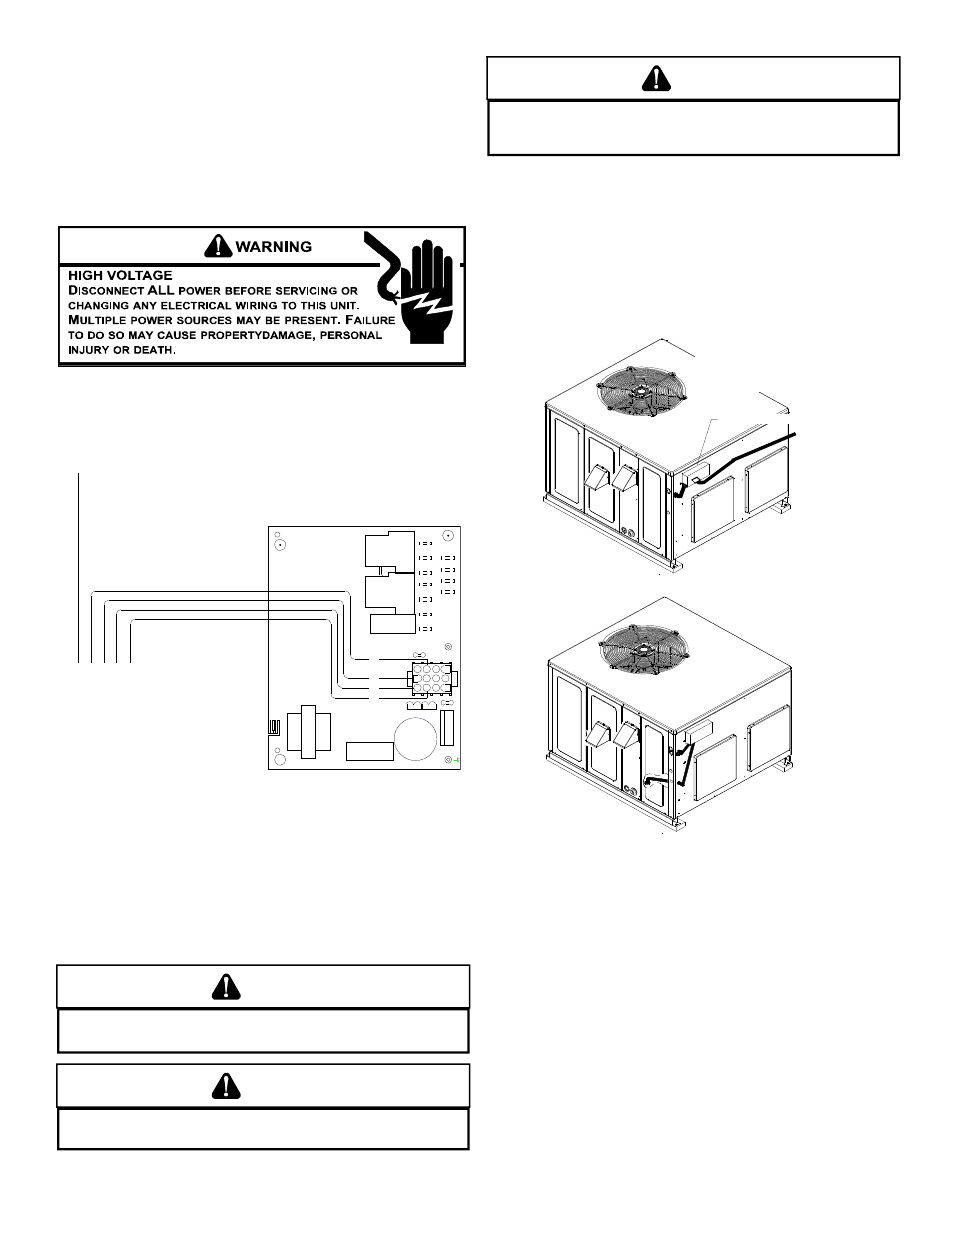 Caution Warning Typical Electrical Wiring Unit Voltage Goodman Manufacturing Diagrams Thermostat Mfg A Gpg13 M User Manual Page 9 36